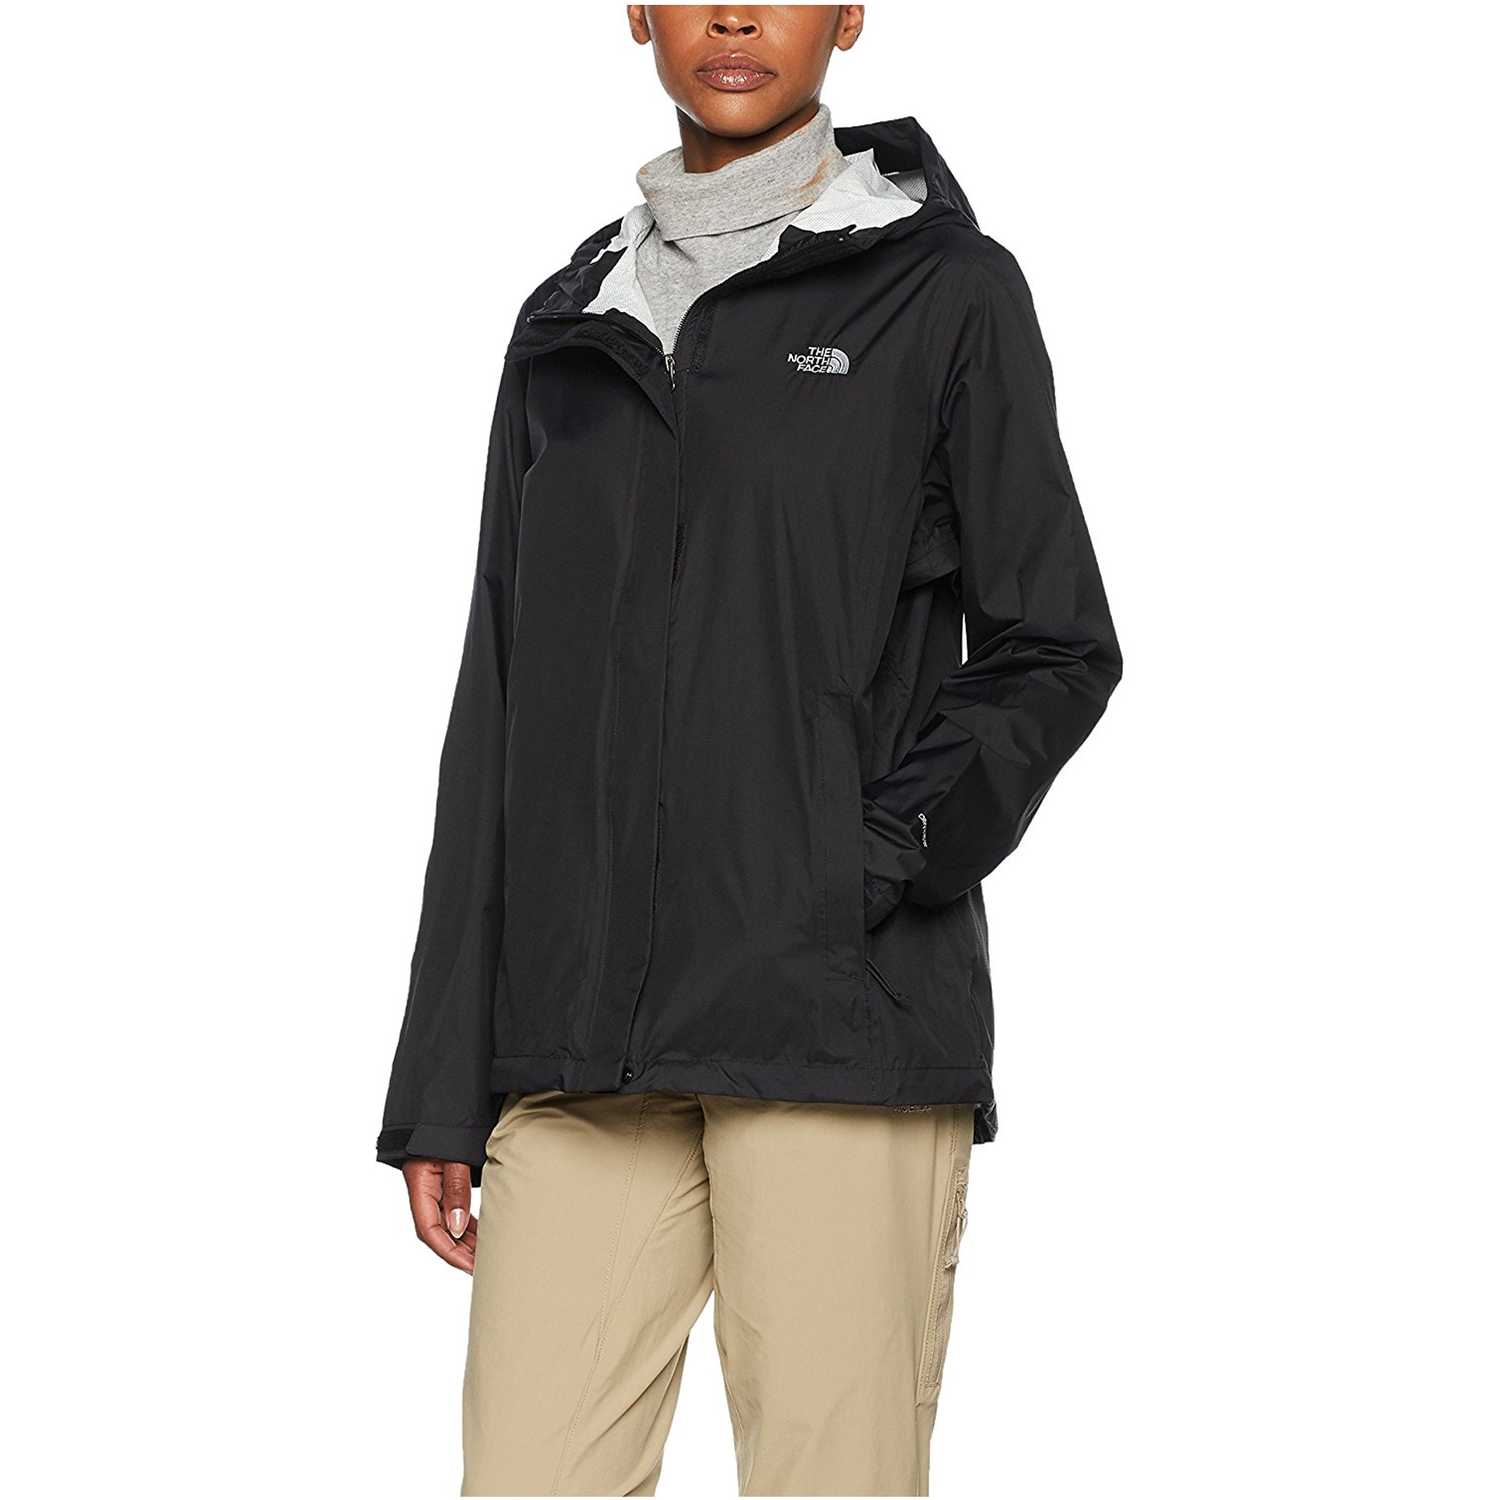 The North Face w venture 2 jacket Negro Viento y Lluvia